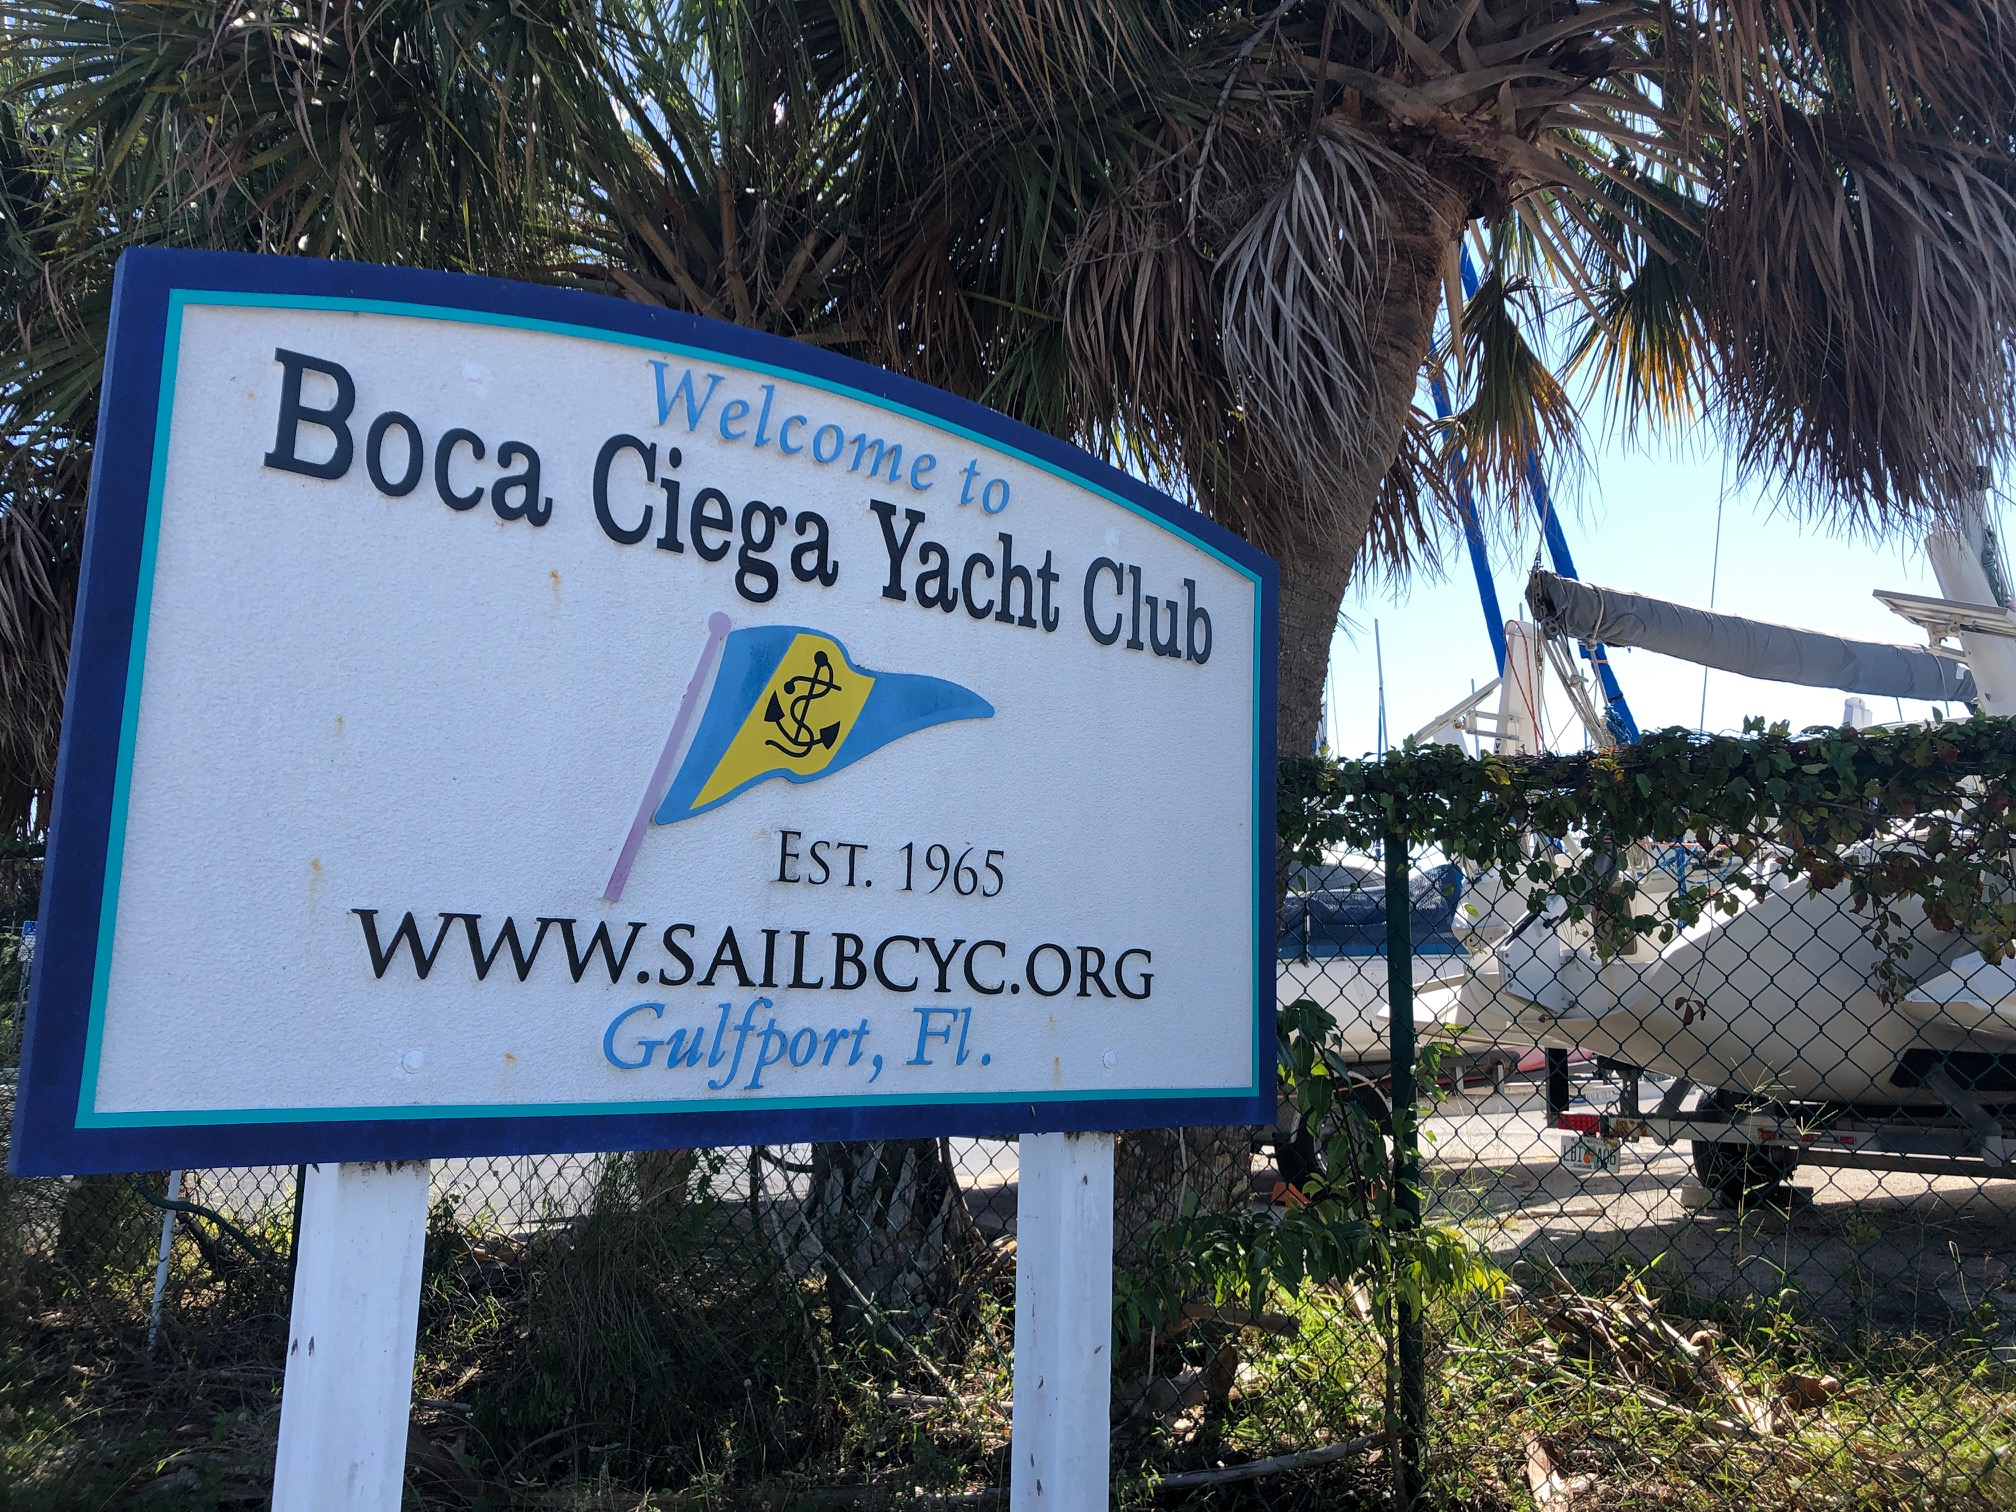 """A whit sign with blue lettering that reads """"Welcome to Boca Ciega Yacht Club, Set. 1965, www.sailbcyc.org, Gulfport, FL"""""""